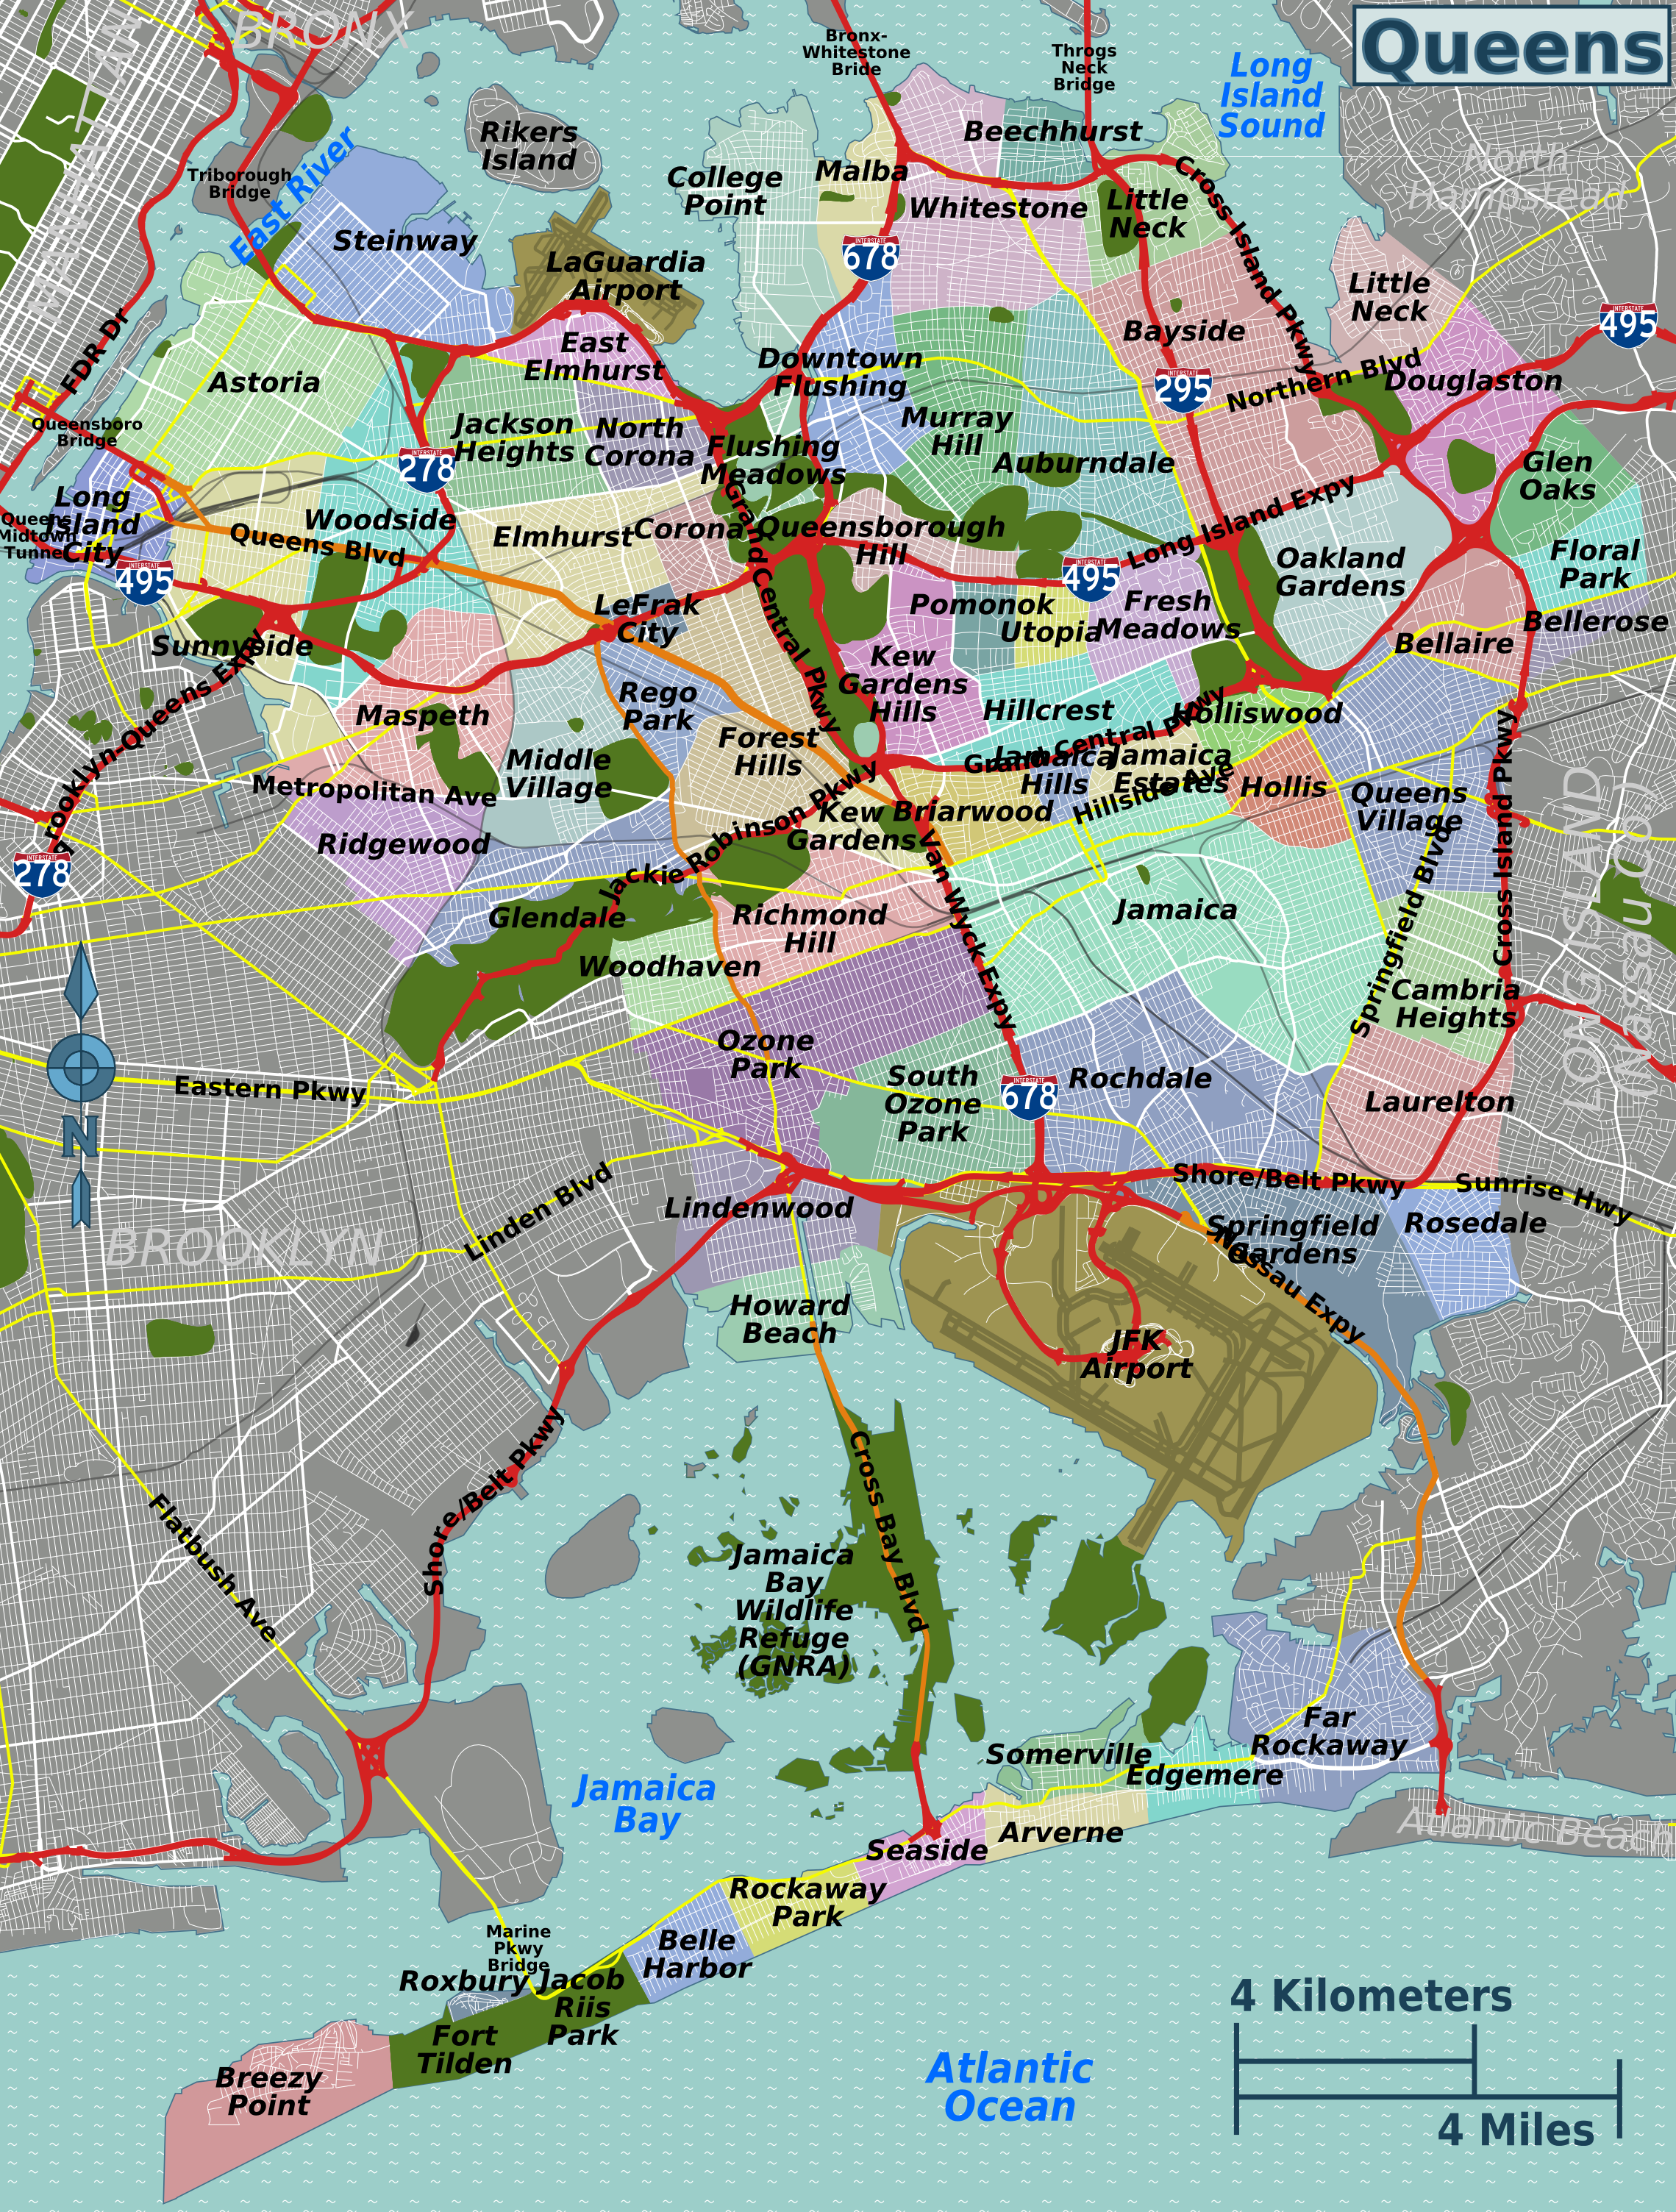 List of Queens neighborhoods - Wikipedia